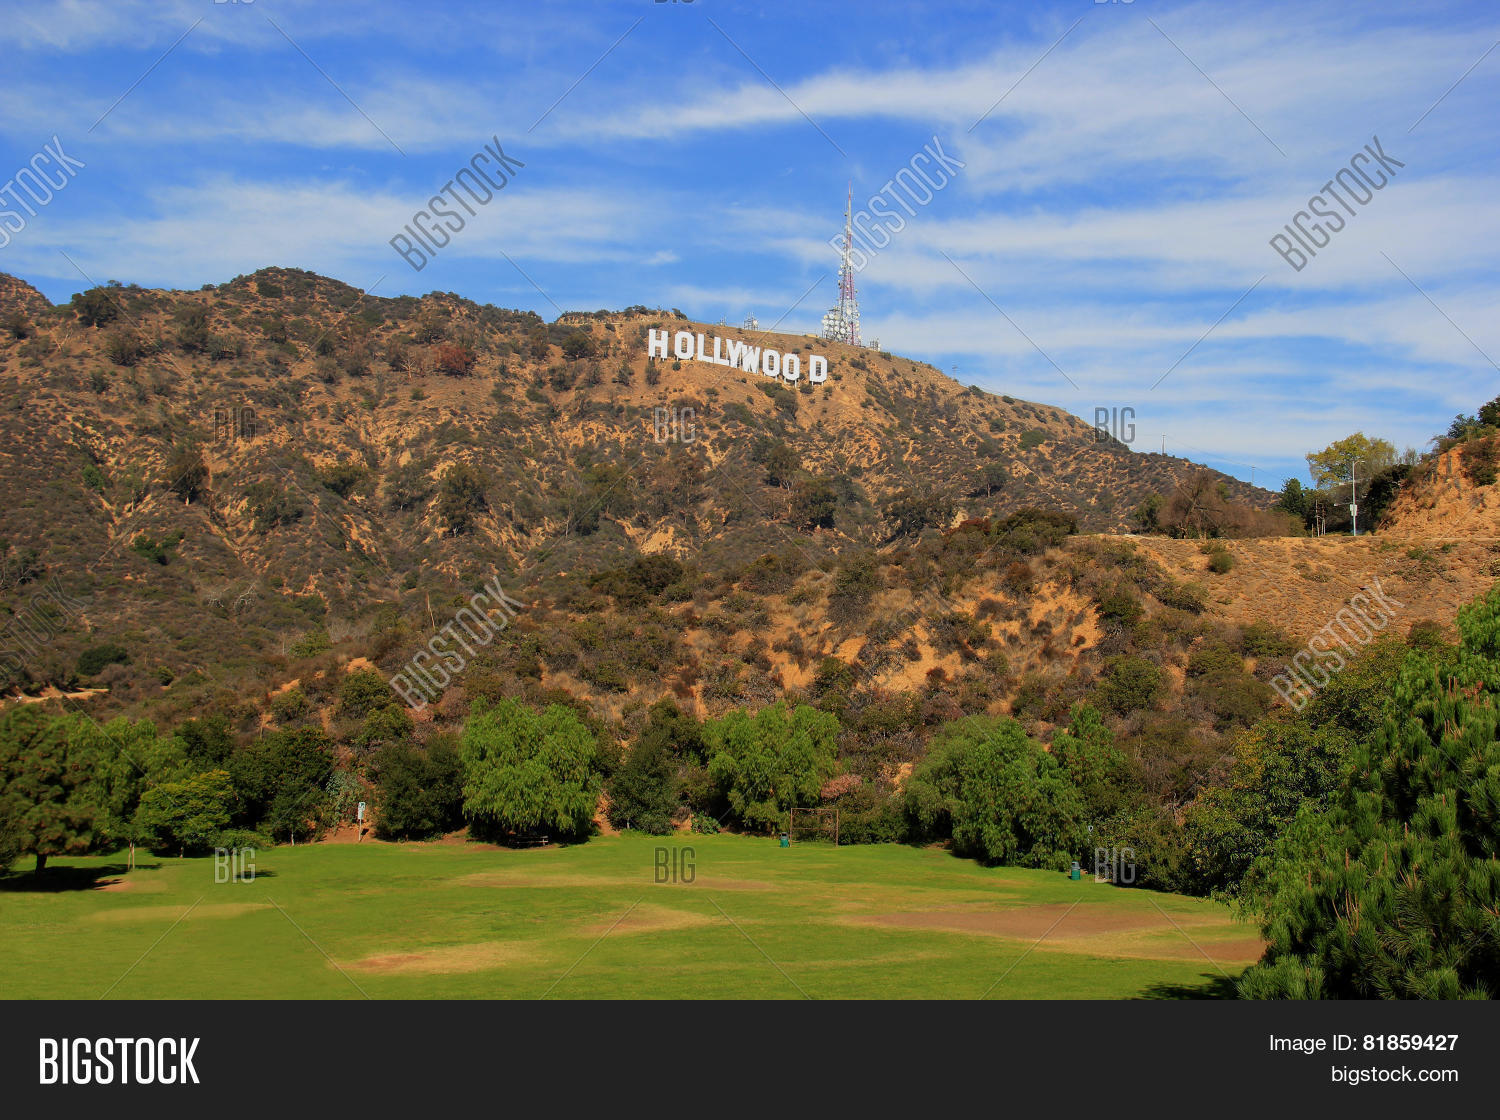 hollywood sign image photo bigstock. Black Bedroom Furniture Sets. Home Design Ideas